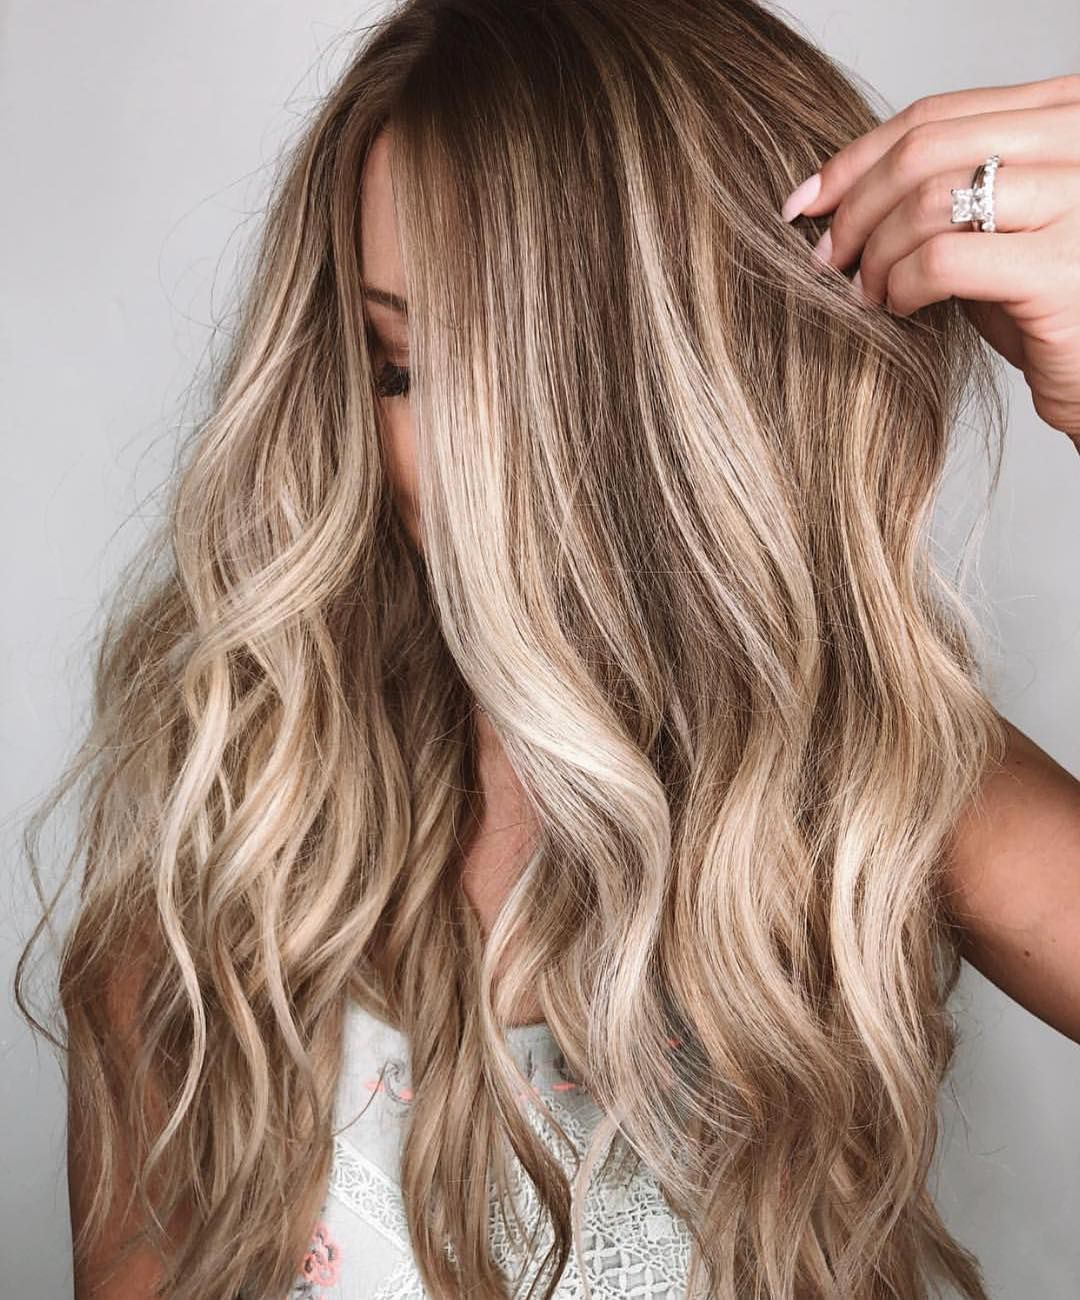 Dirty blonde balayage with curls #blondehair